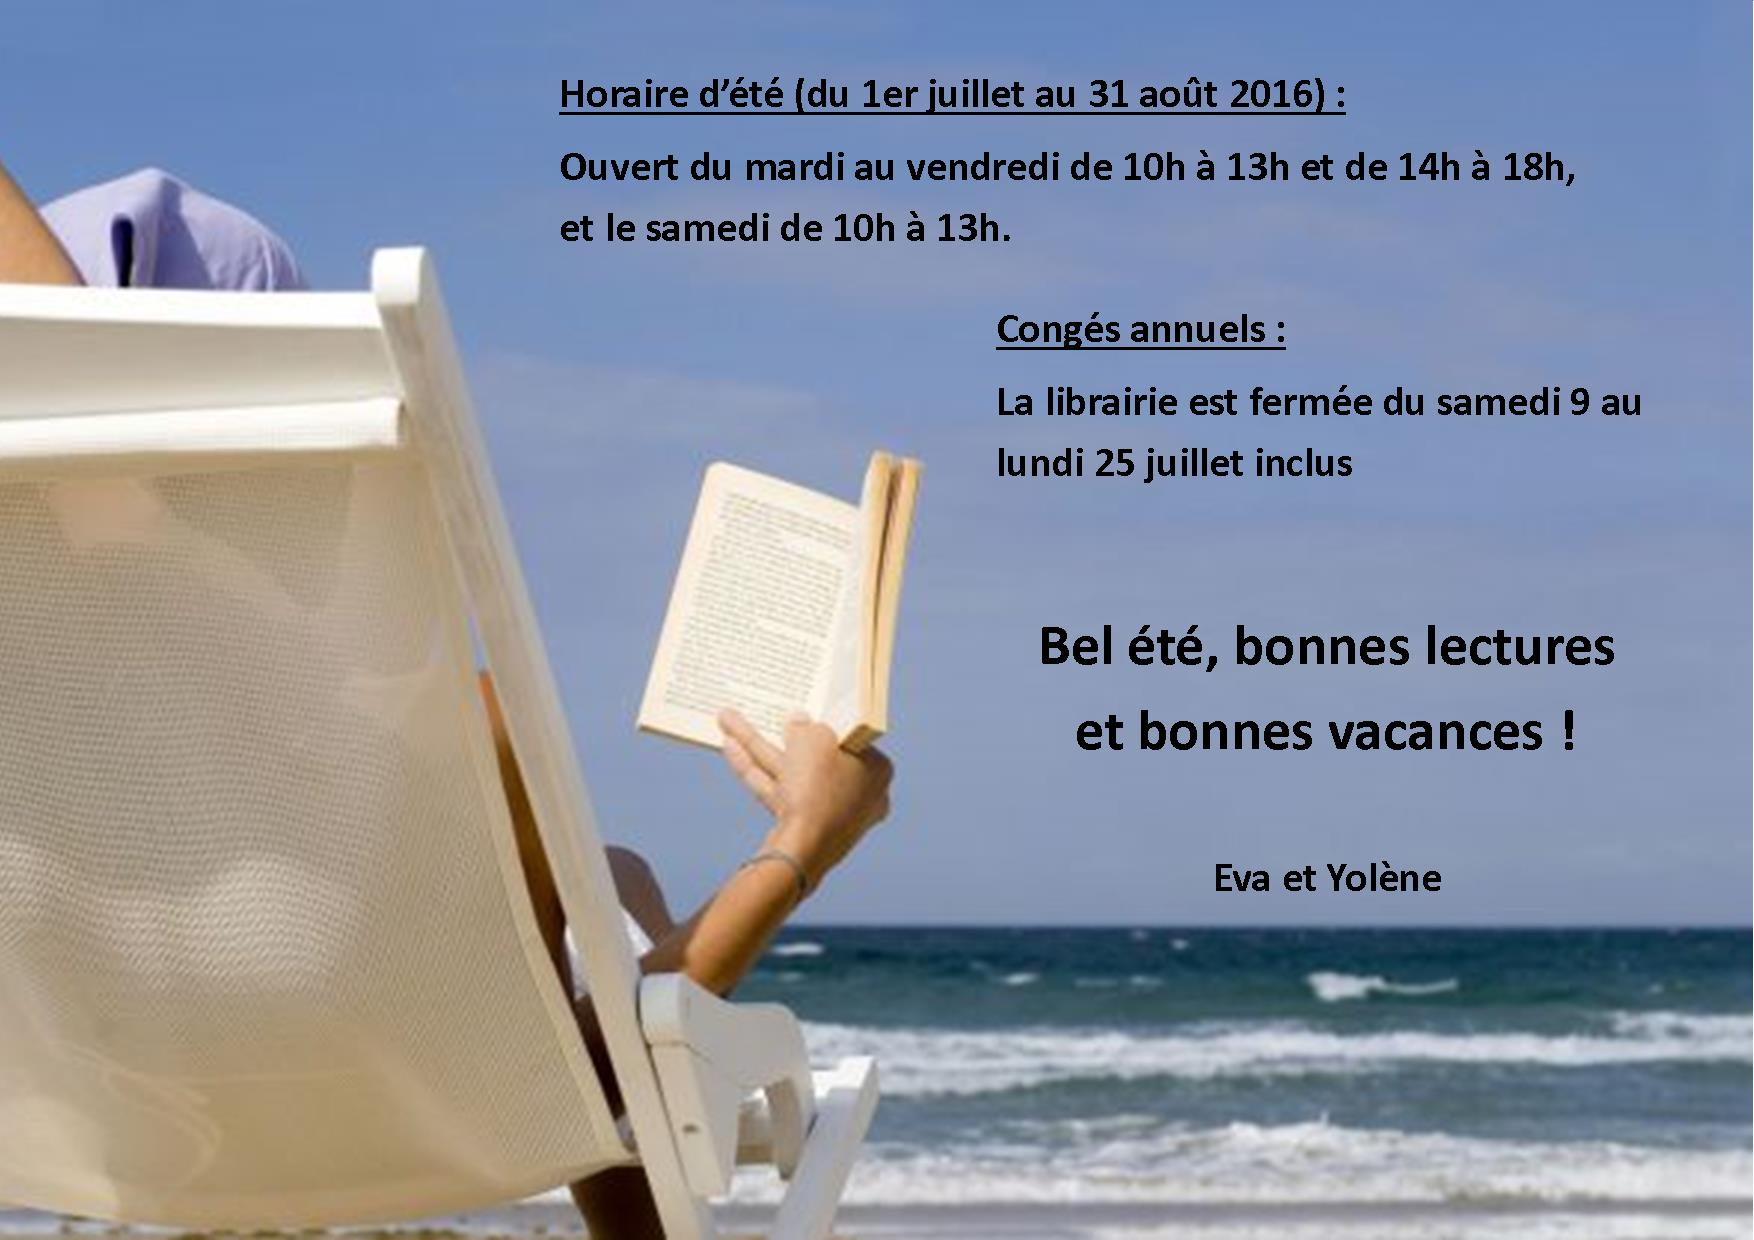 Horaire t 2016